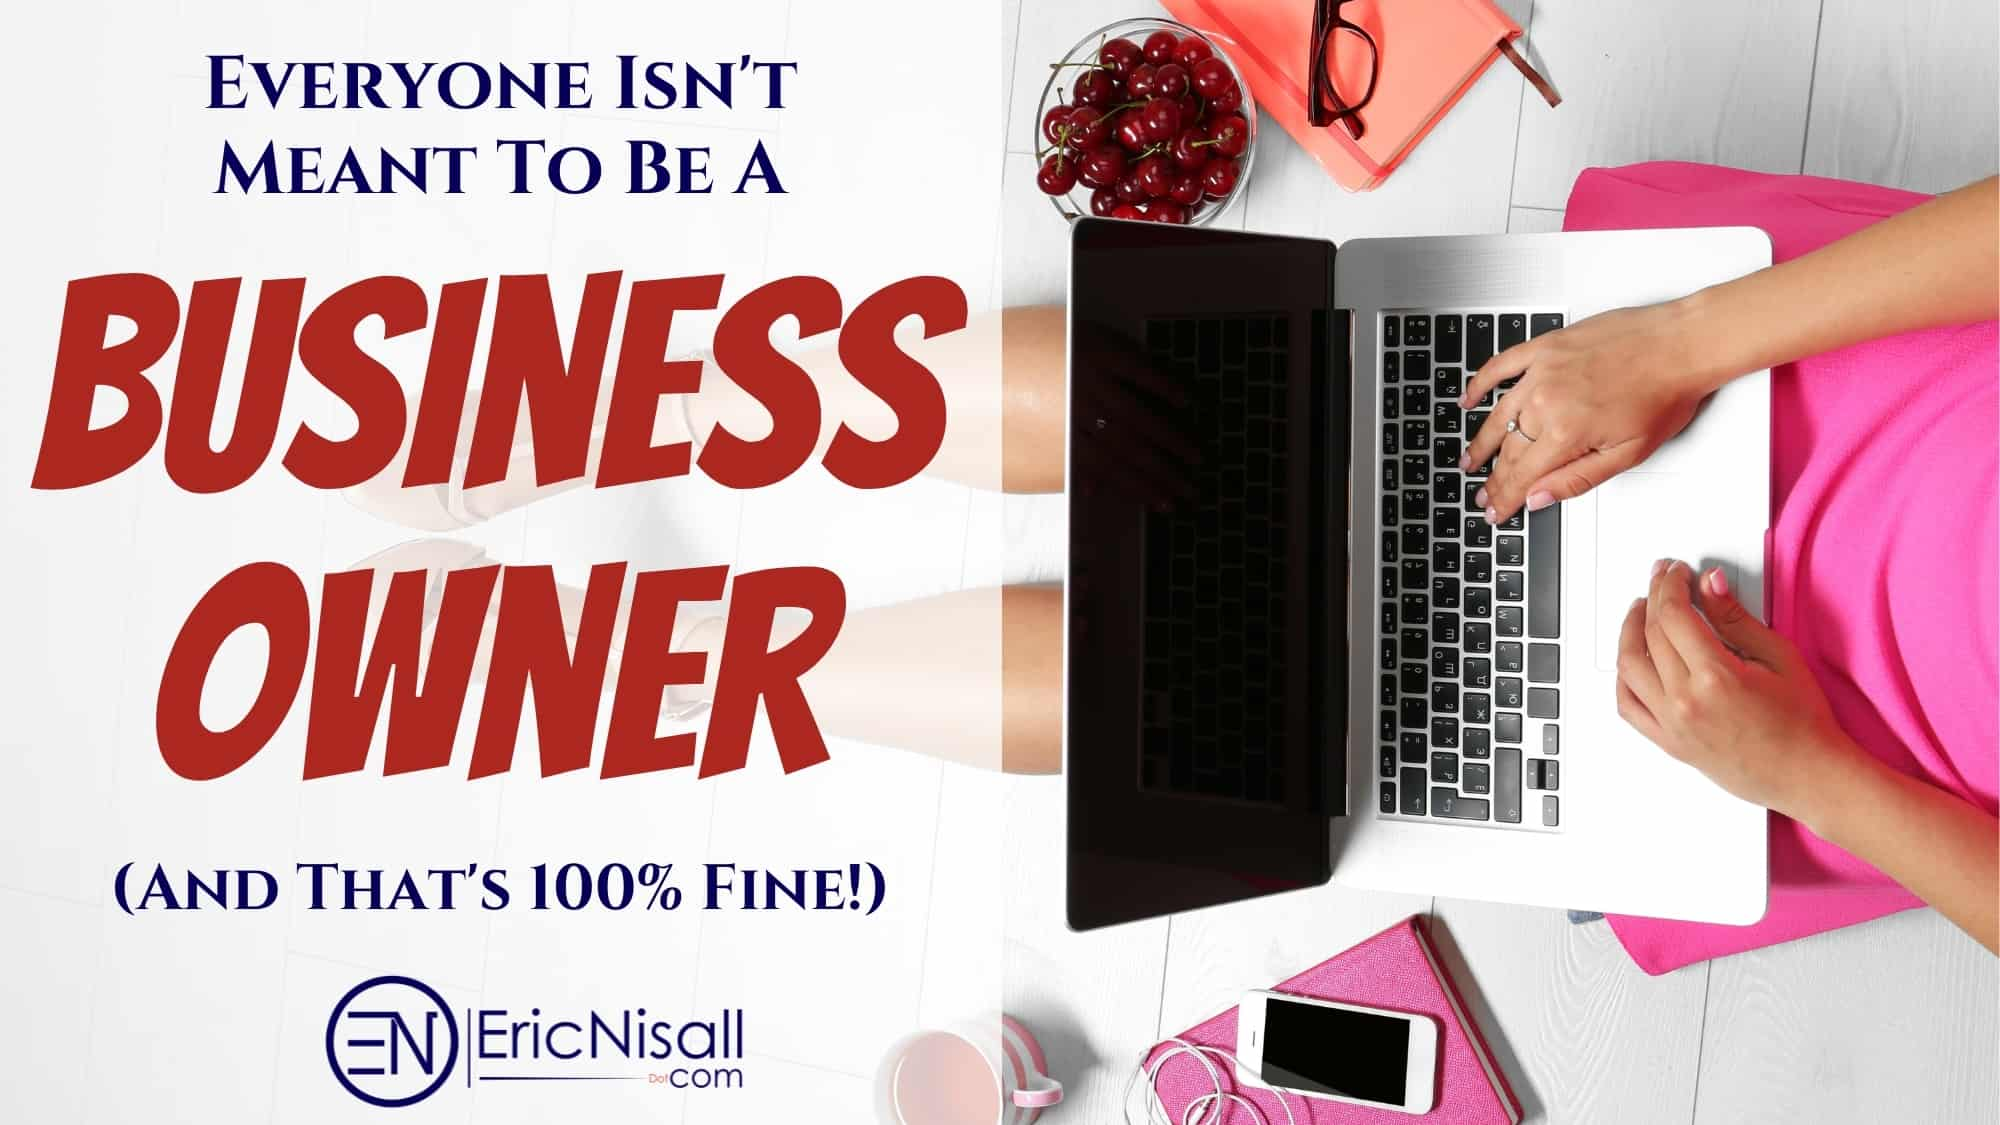 Not Everyone Is Meant To Be A Business Owner